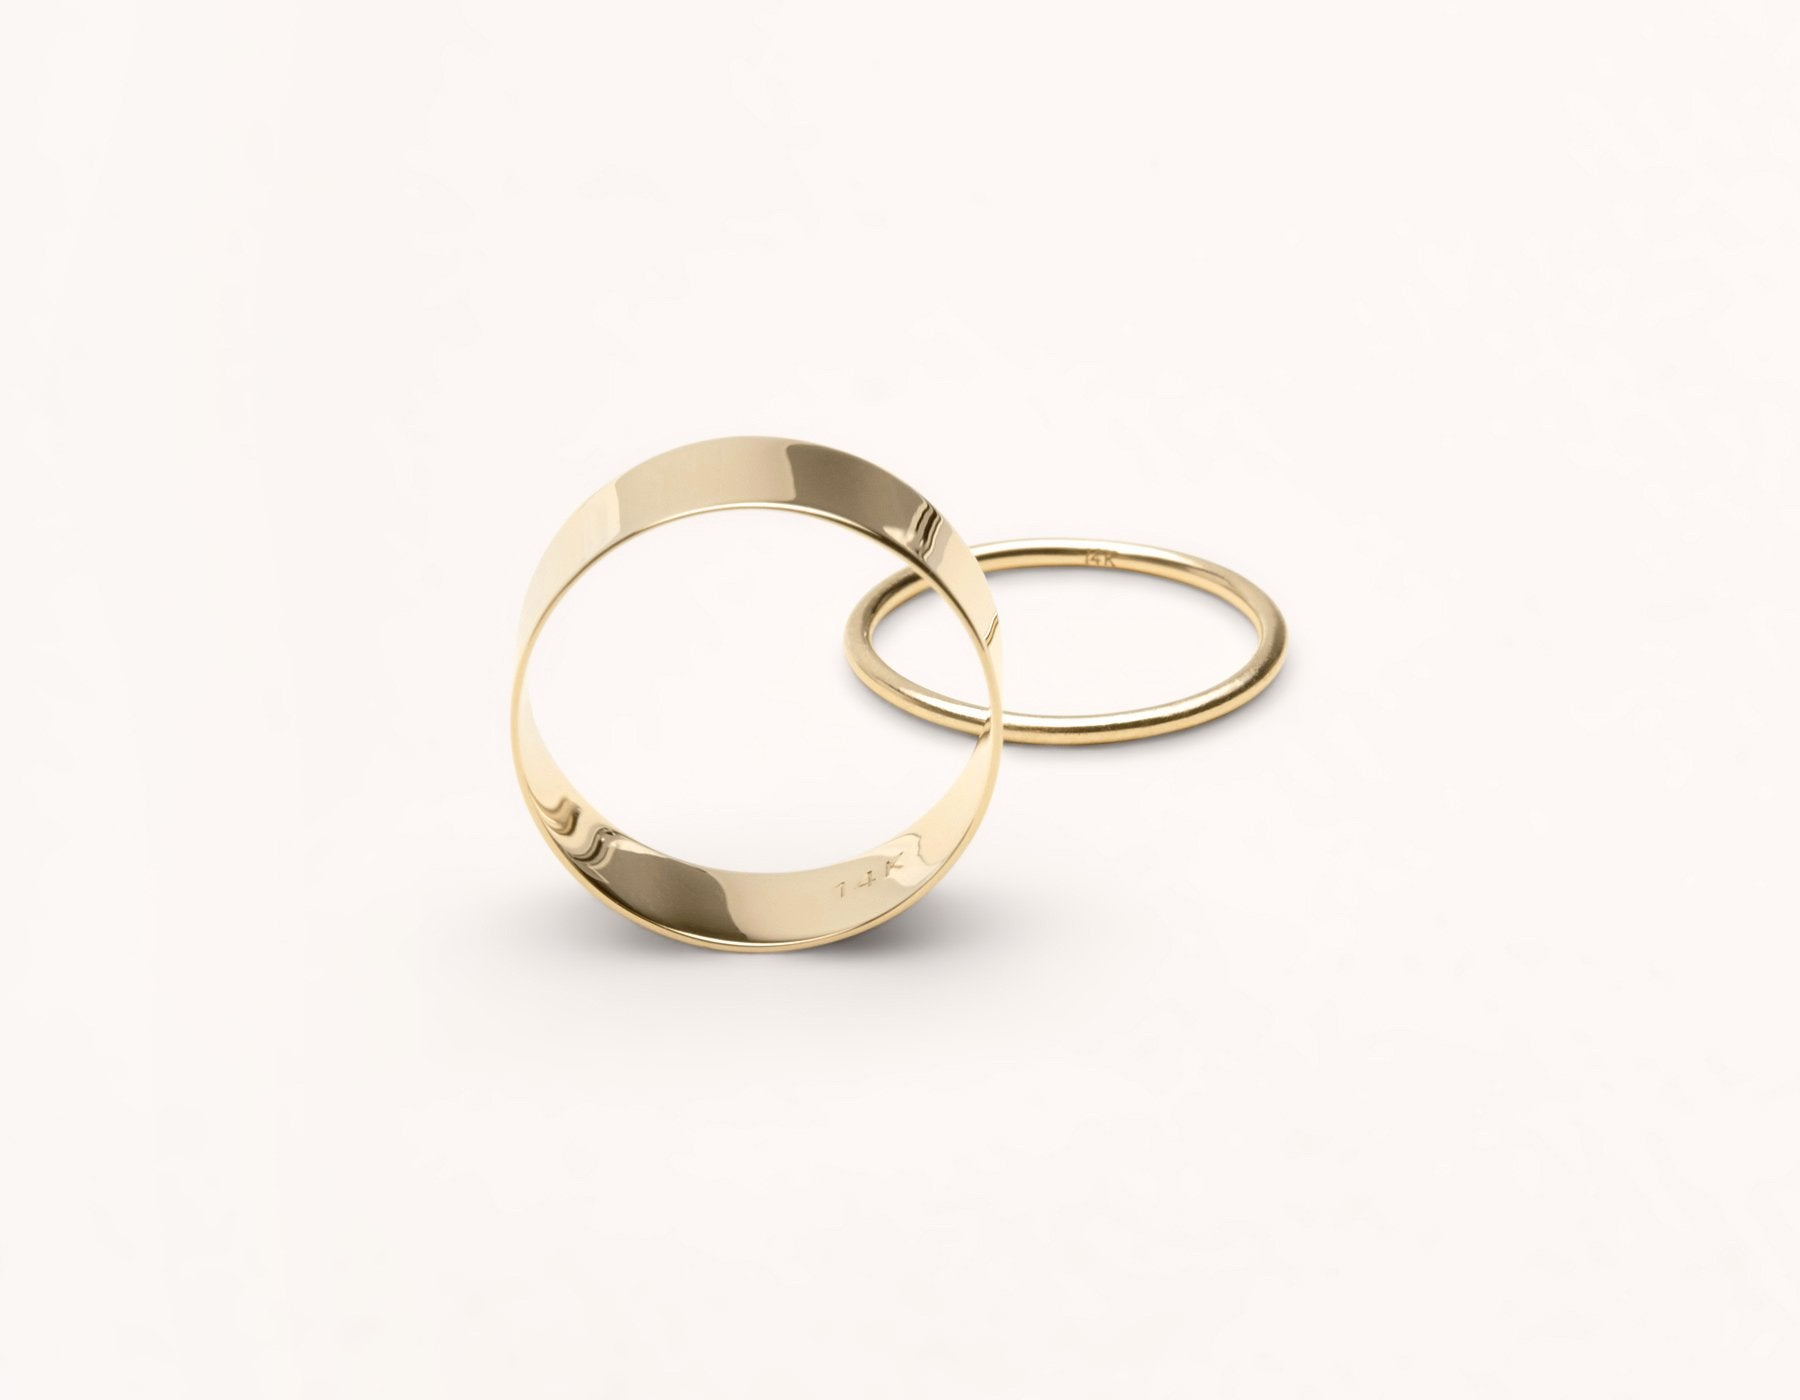 14k solid gold Modern Minimalist Vrai & Oro Thick Stacking Ring Skinny Stacker, 14K Yellow Gold